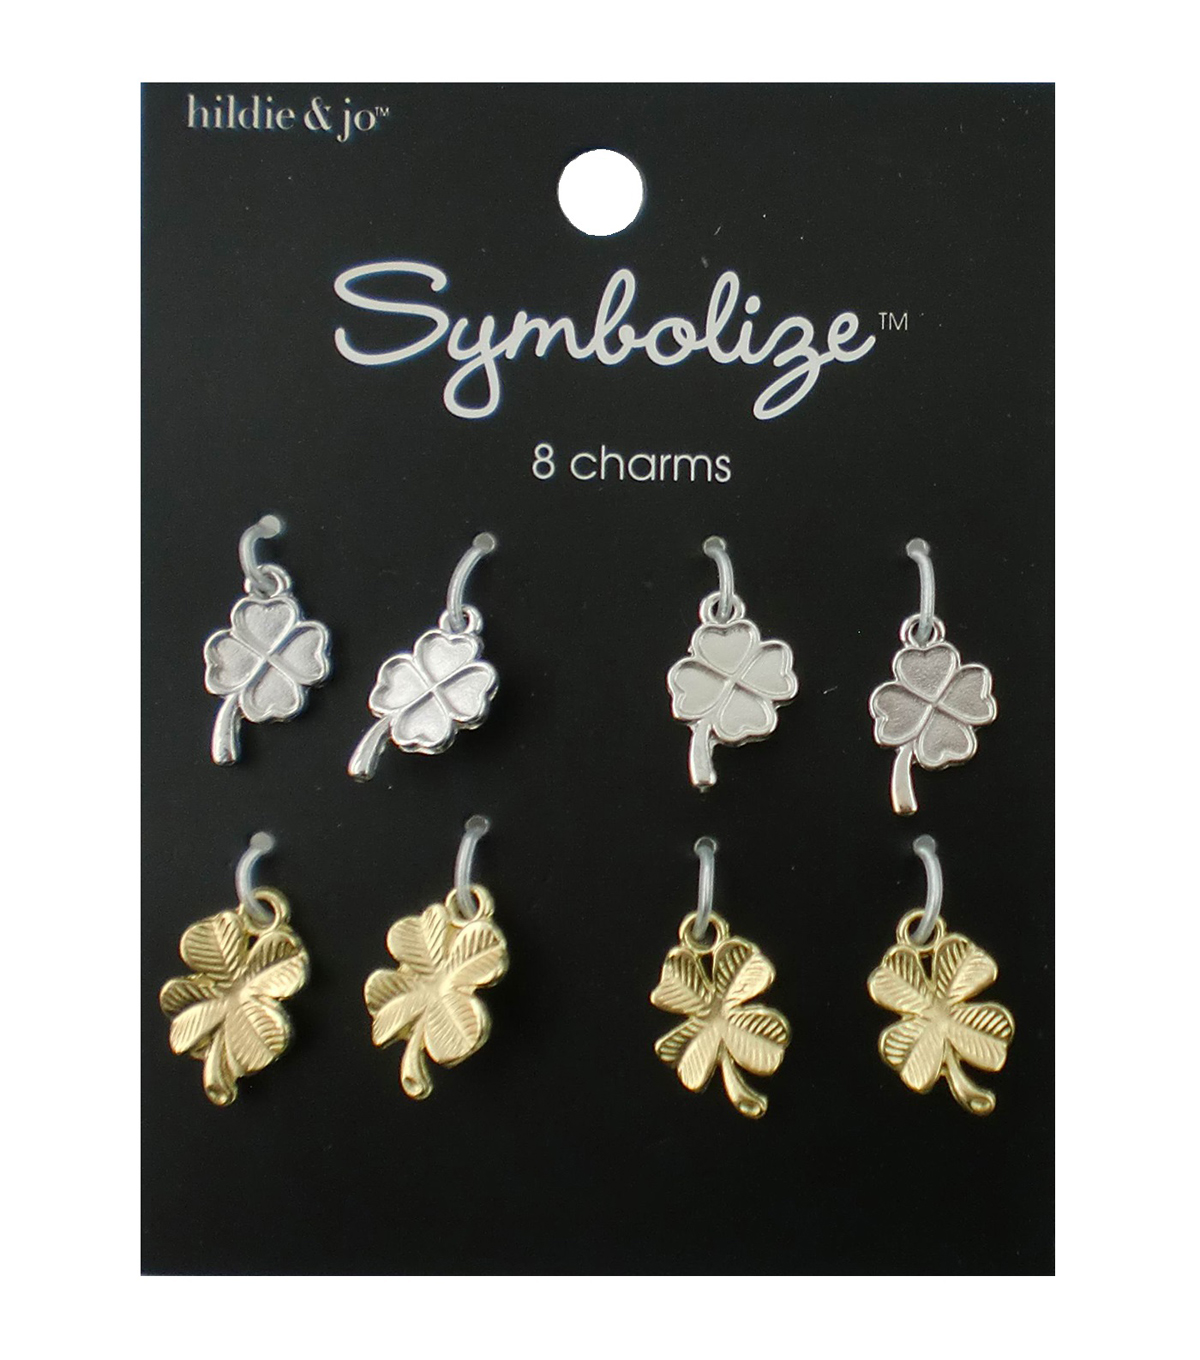 hildie & jo Symbolize 8 Pack Clover Silver & Gold Charms